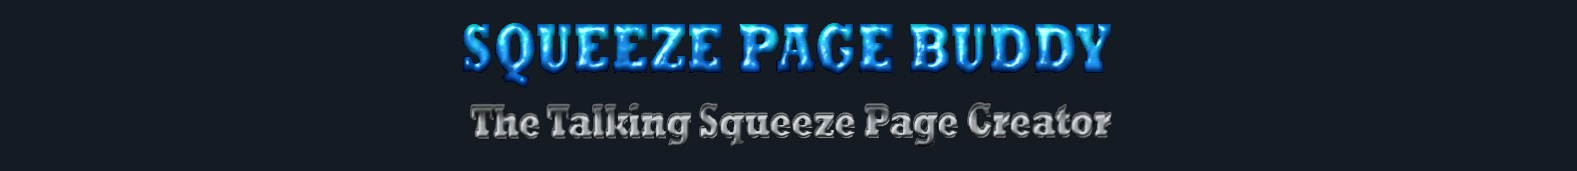 FREE Talking Squeeze Page Buddy Software